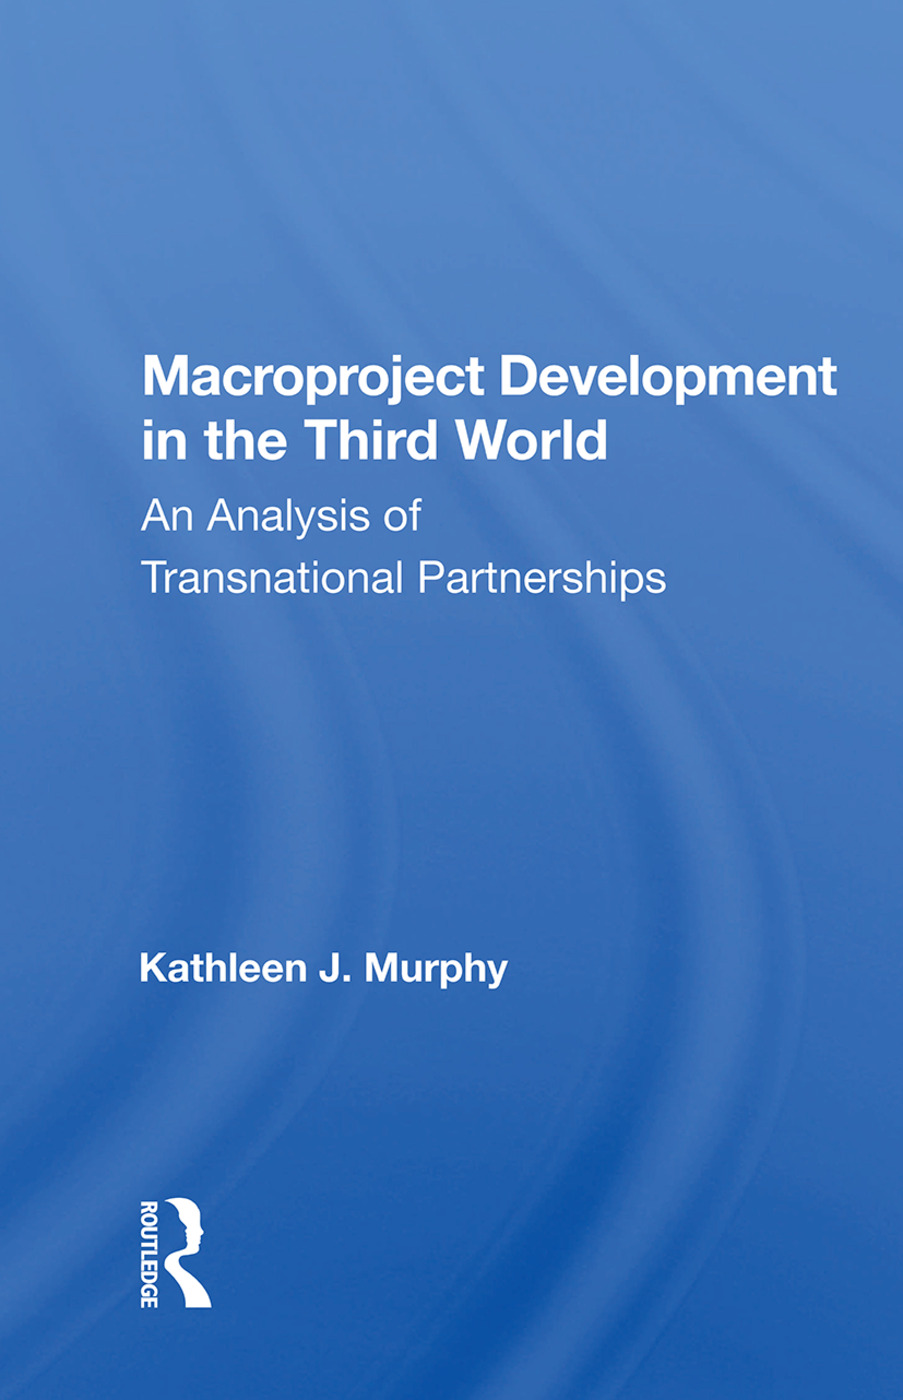 Macroproject Development In The Third World: An Analysis Of Transnational Partnerships book cover